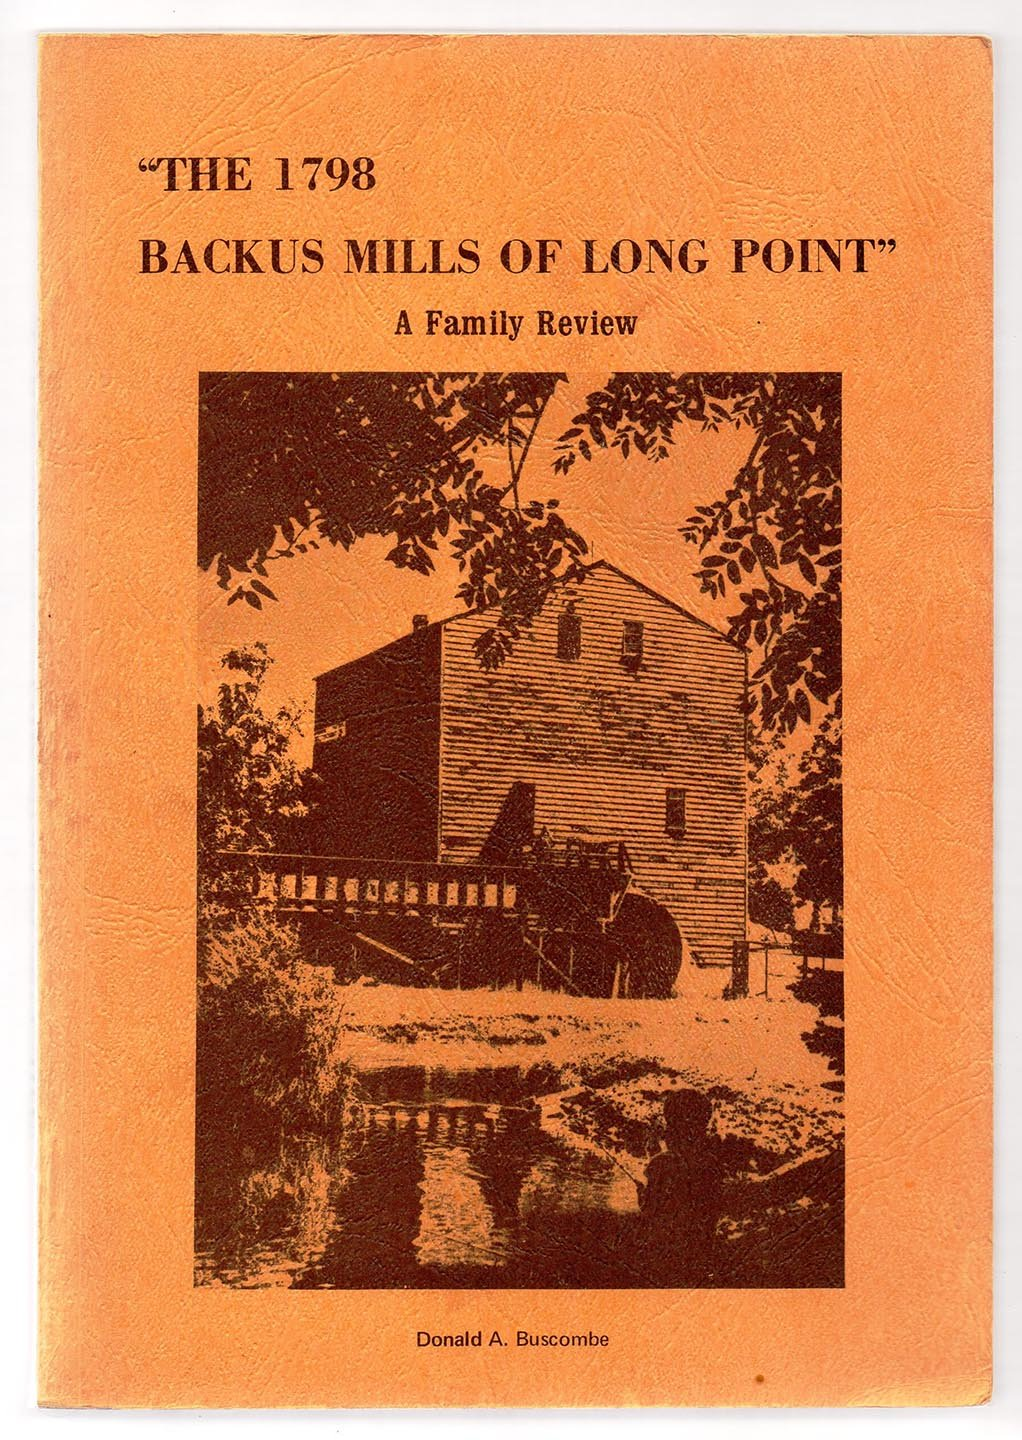 The 1798 Backus Mills of Long Point A Family Review